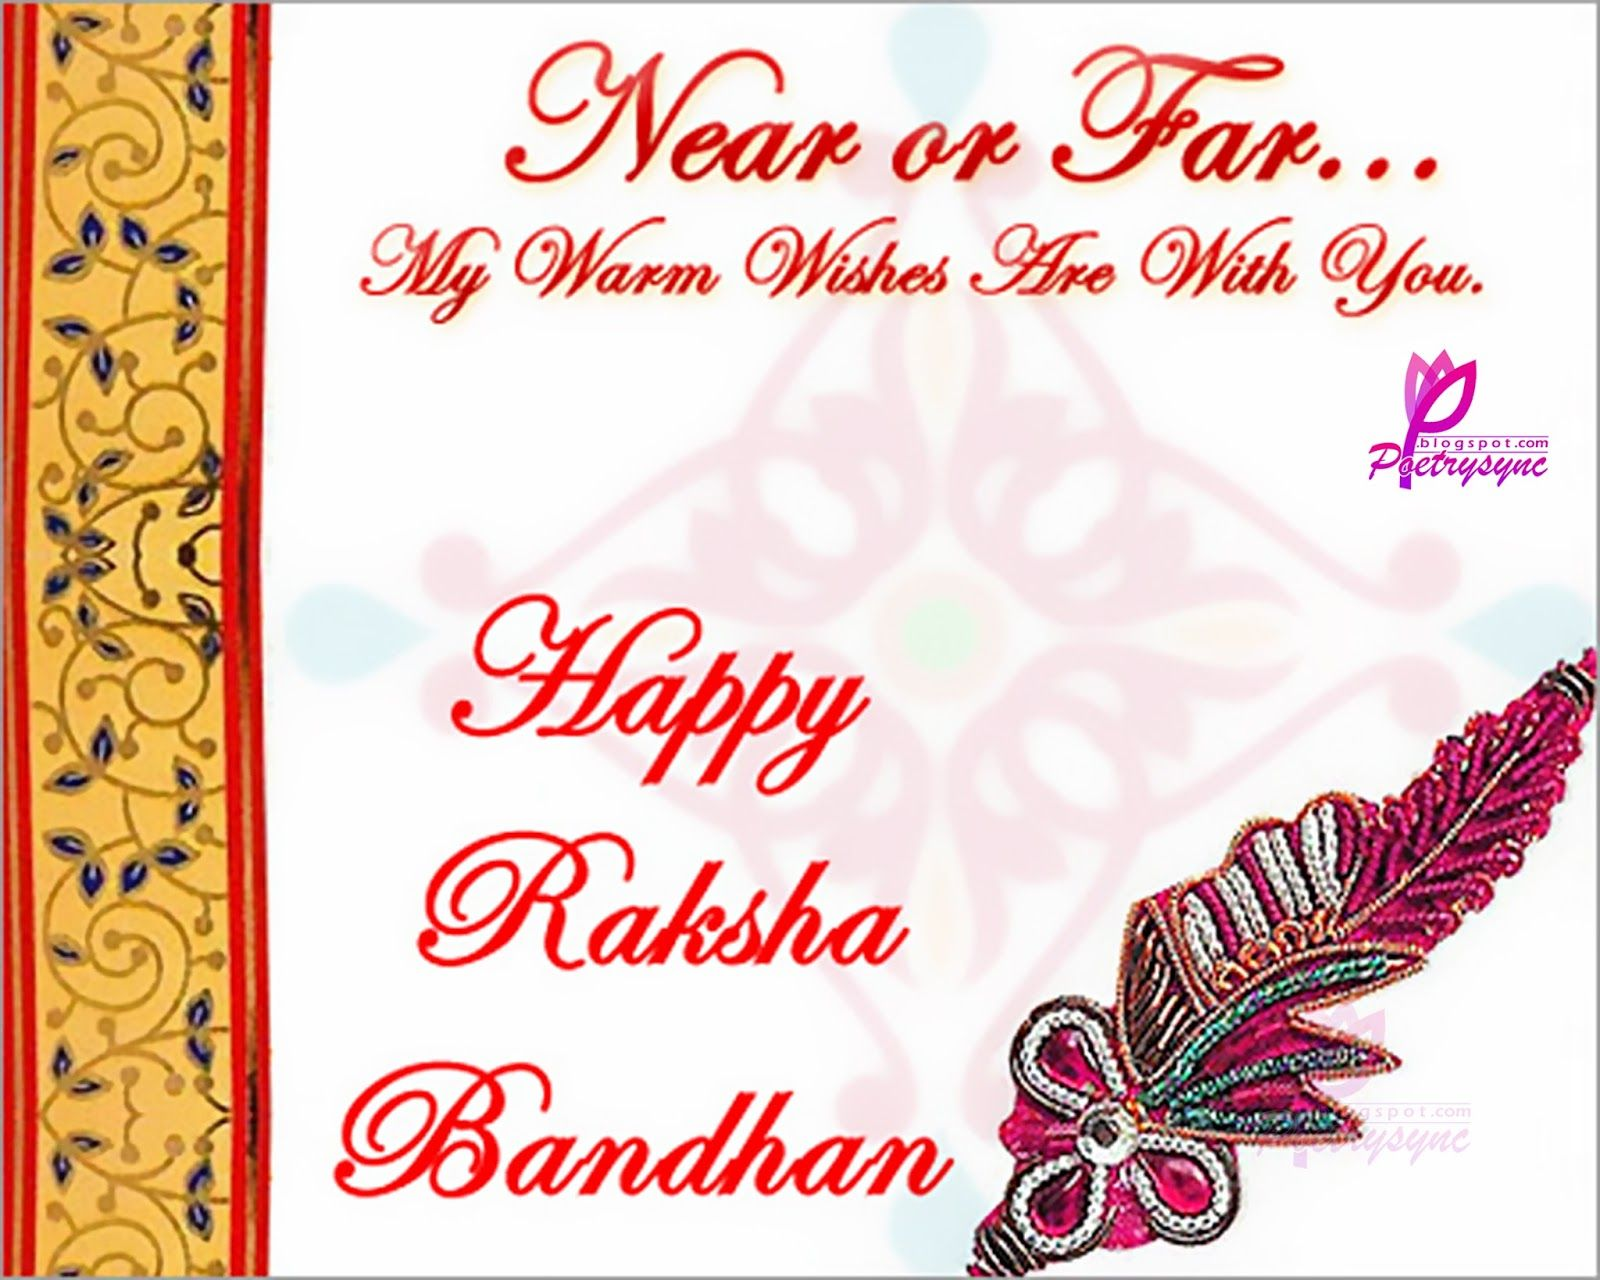 Raksha bandhan raksha bandhan quotes poems and shayari with raksha bandhan raksha bandhan quotes poems and shayari with images for brother kristyandbryce Image collections